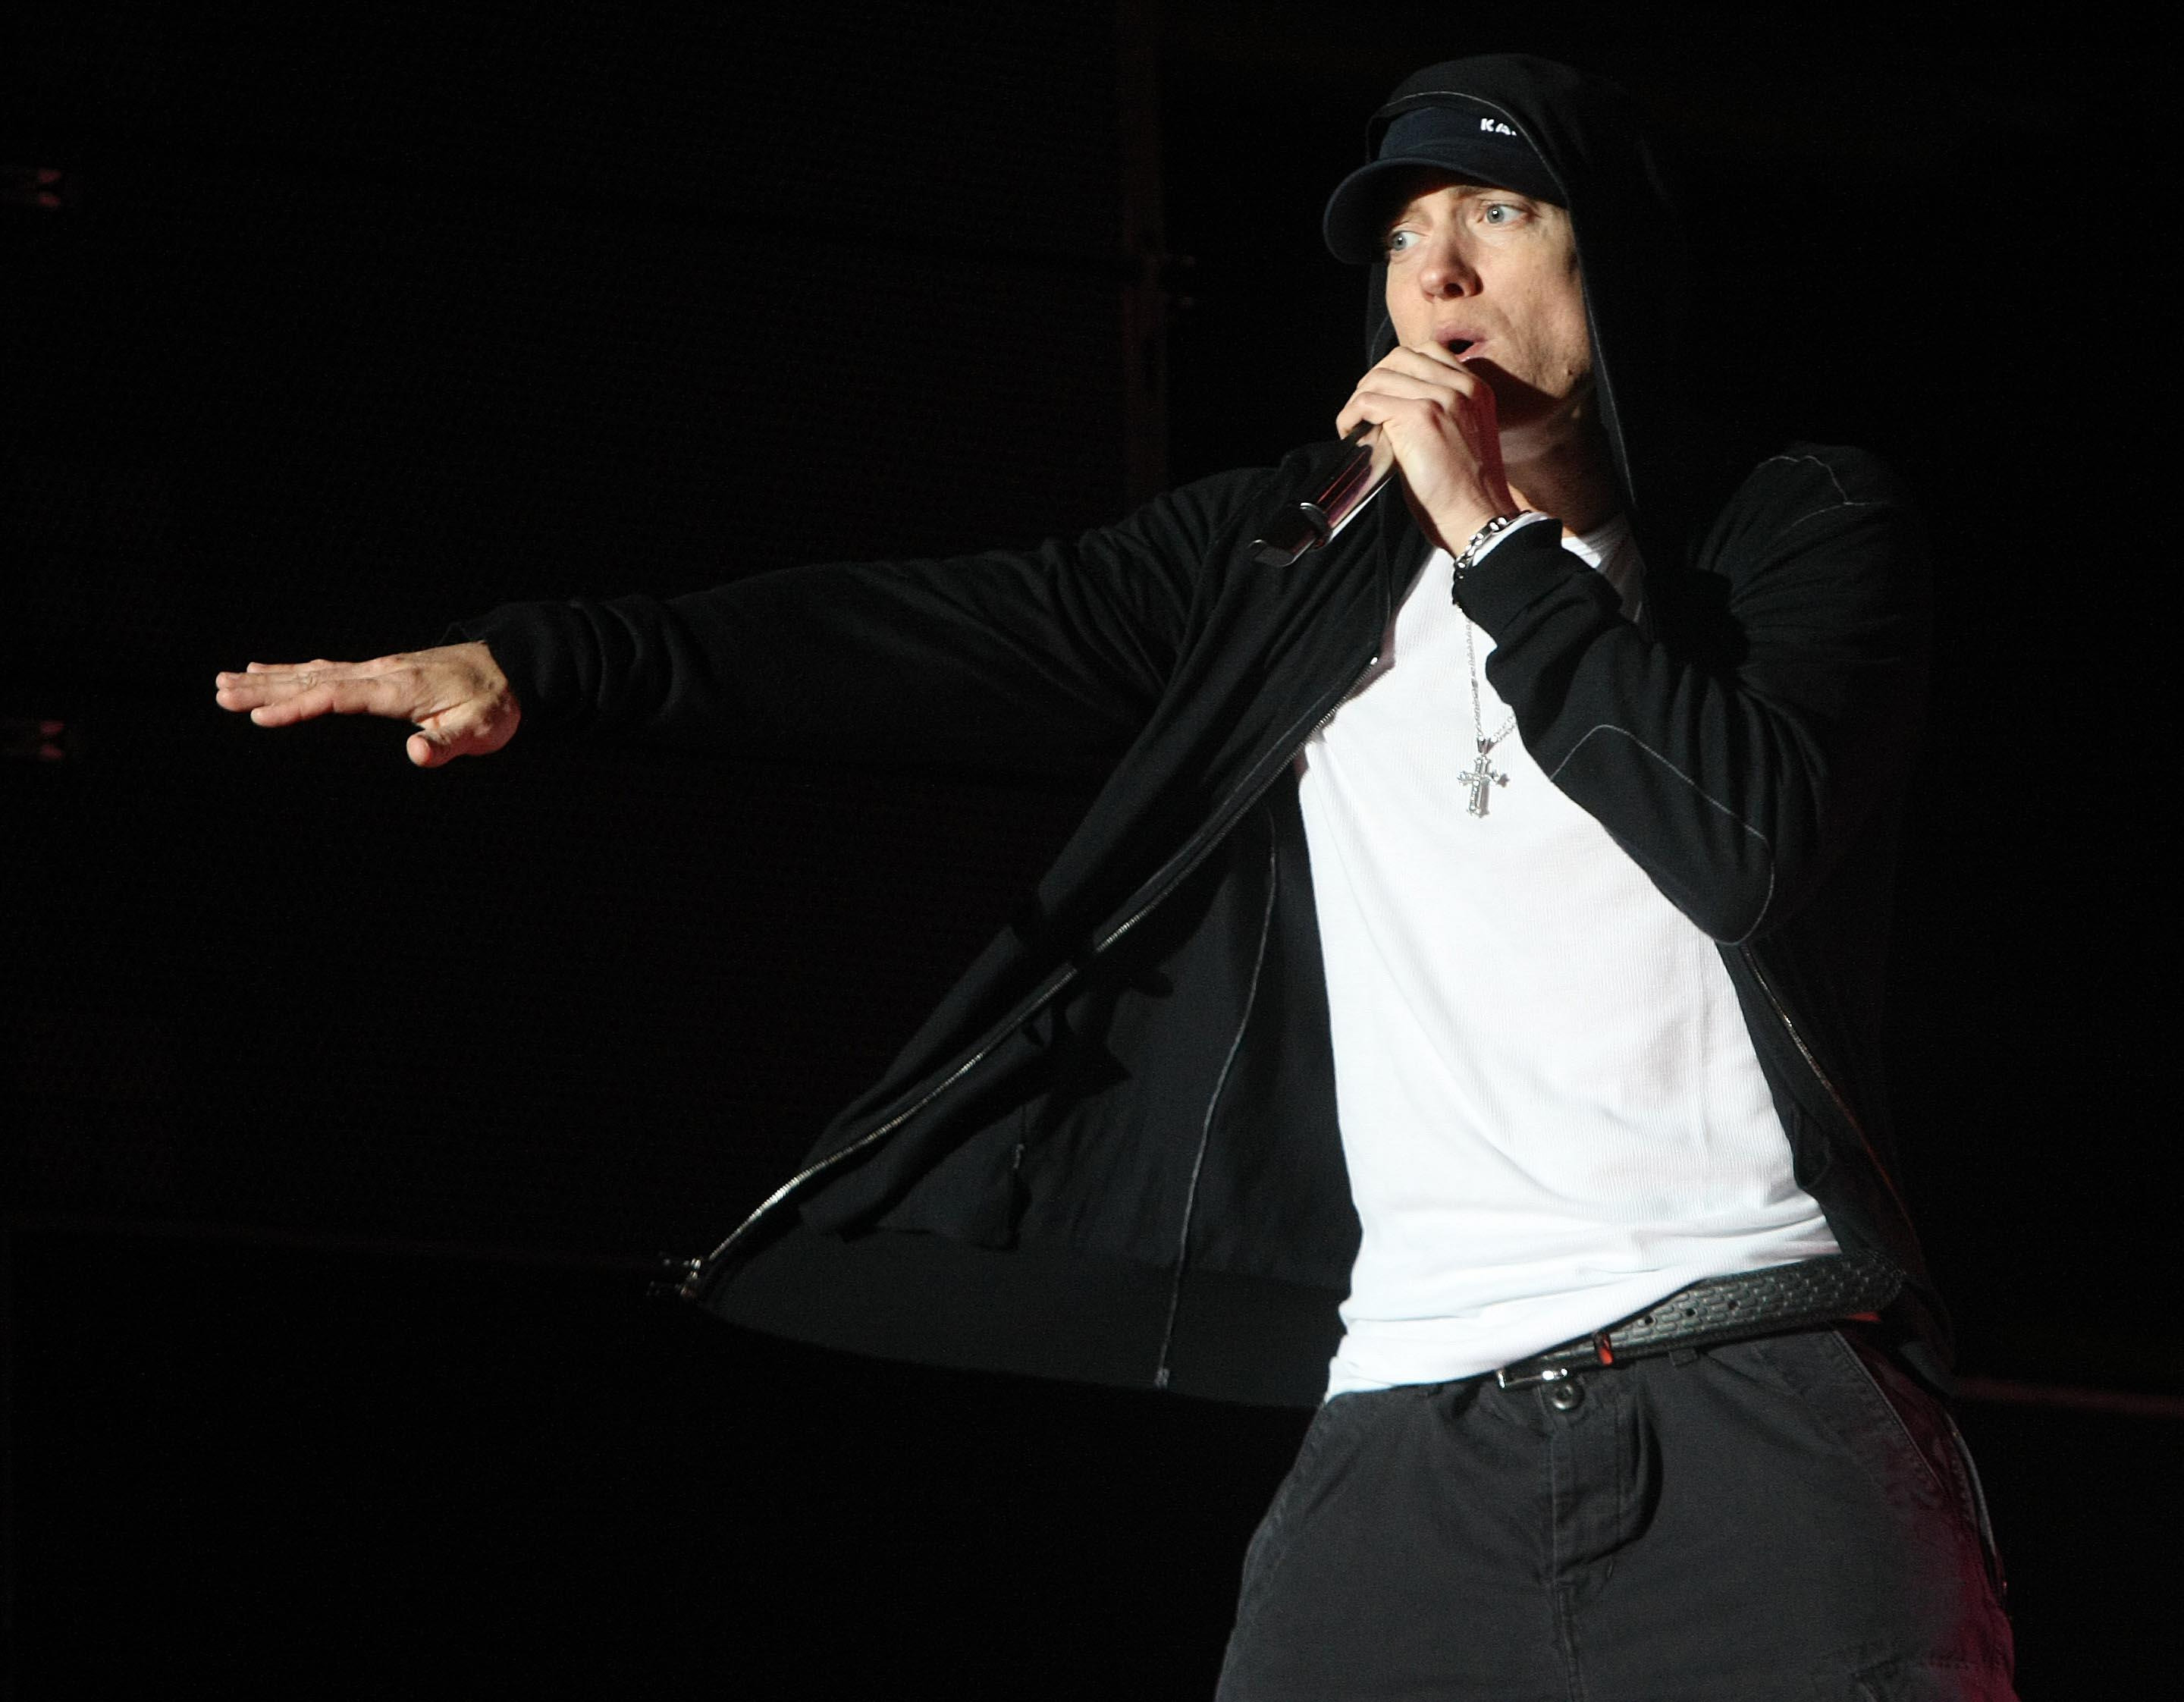 Here's Why Eminem's Latest Album Could Get Him Killed, According To Coolio